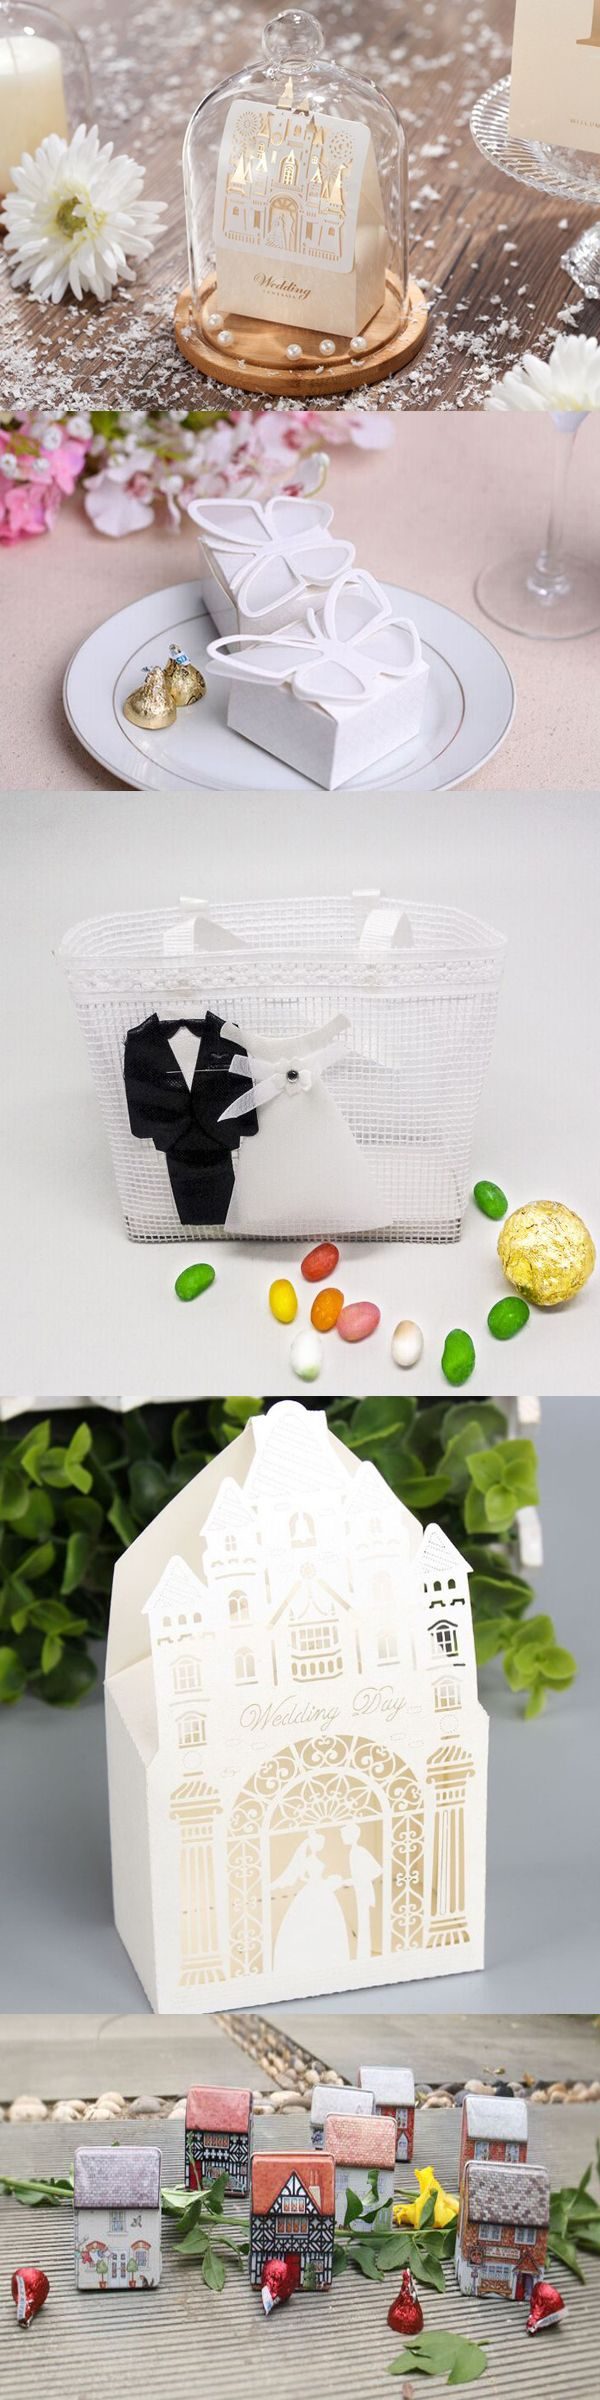 30+ Beautiful Wedding Candy Favor Boxes | Rustic wedding favors ...